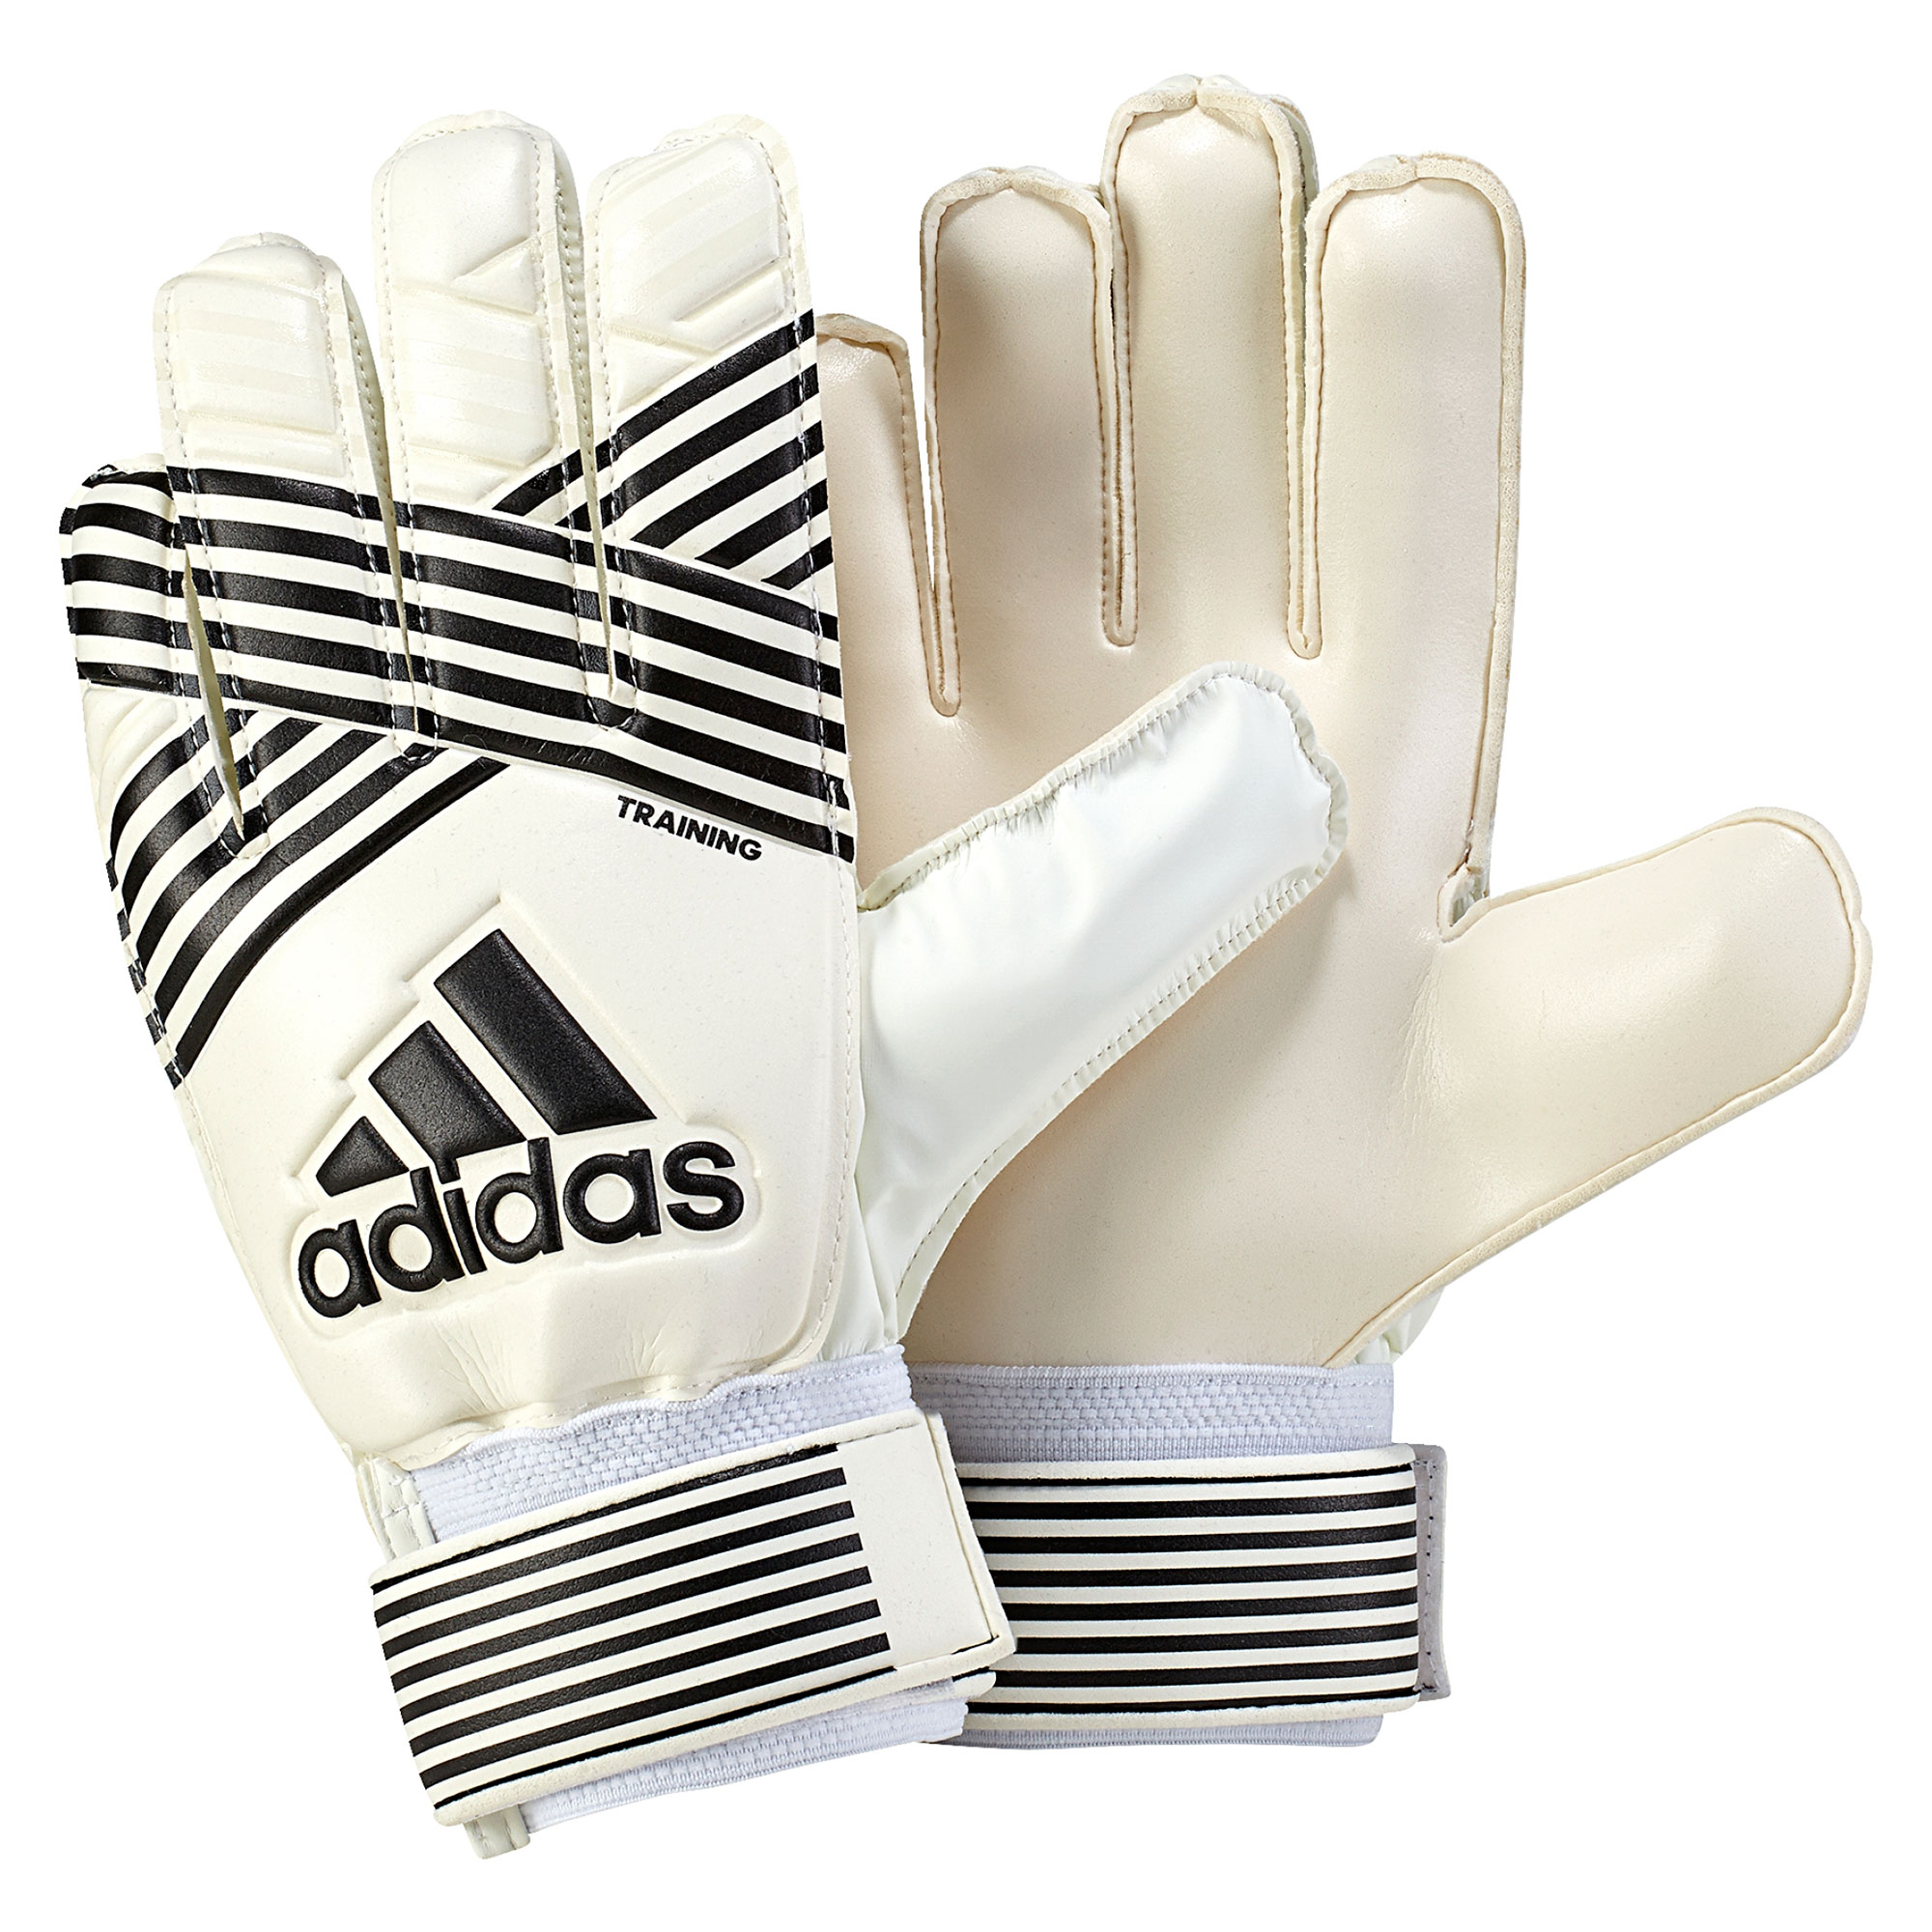 Image of adidas Ace Training Goalkeeper Gloves - Clear Onix/Core Black/Onix/White